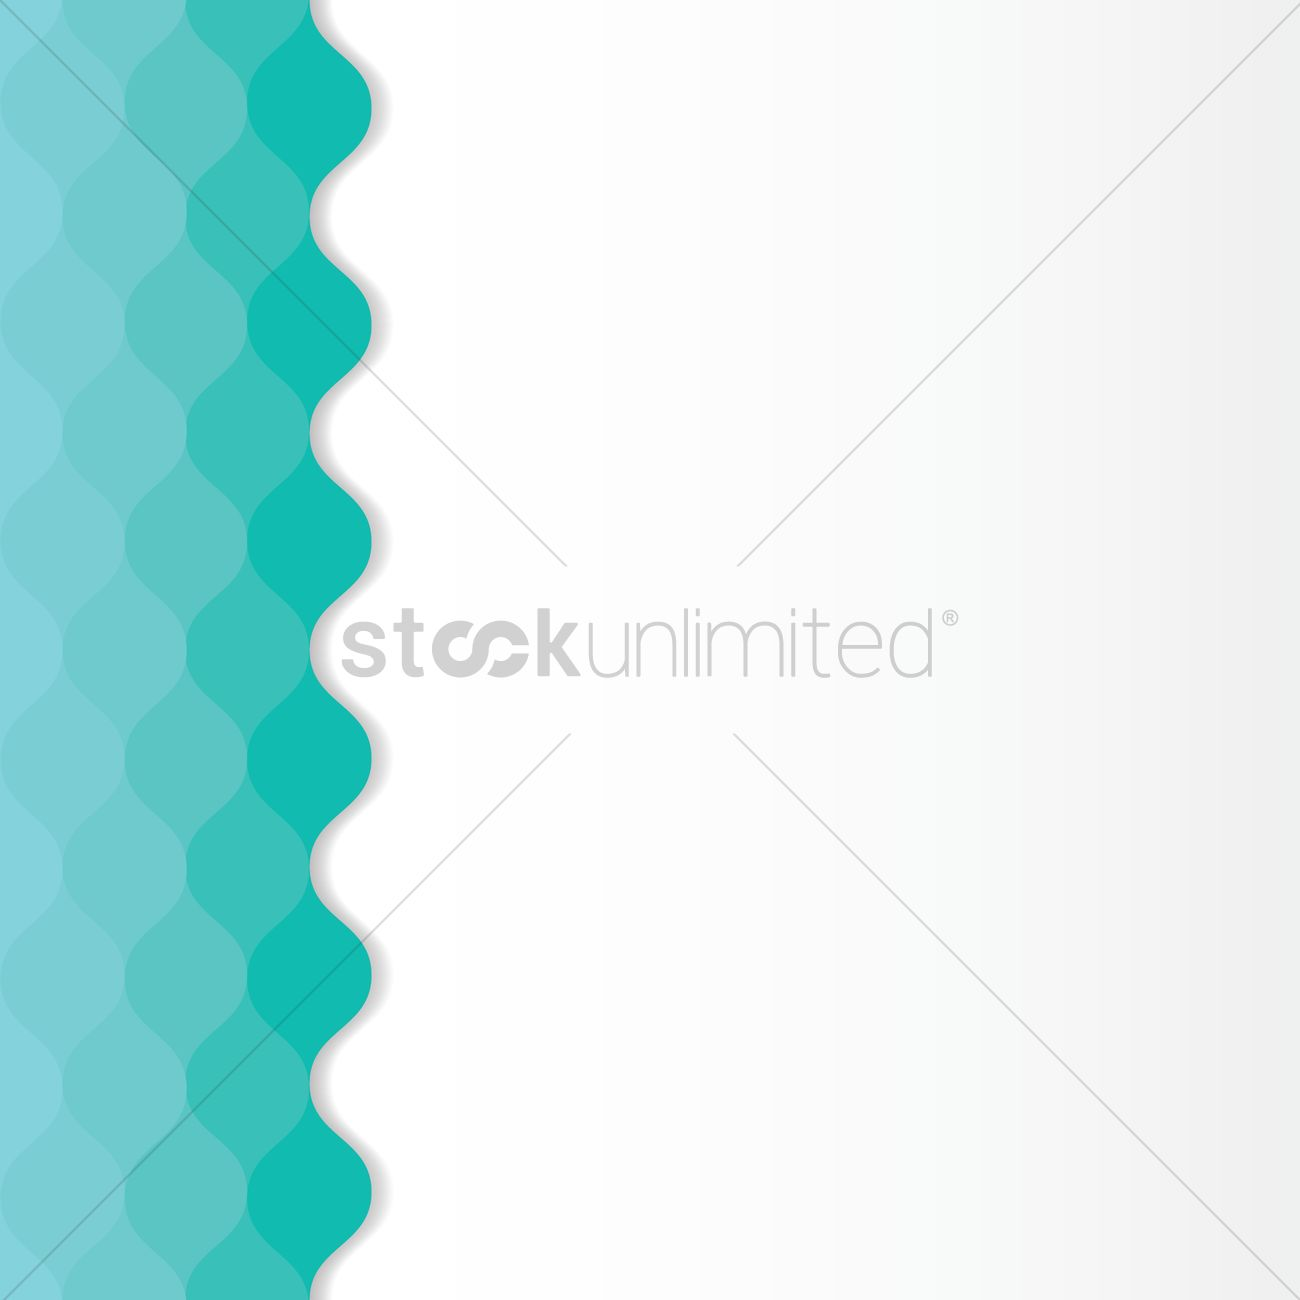 Creative Background Design Vector Image